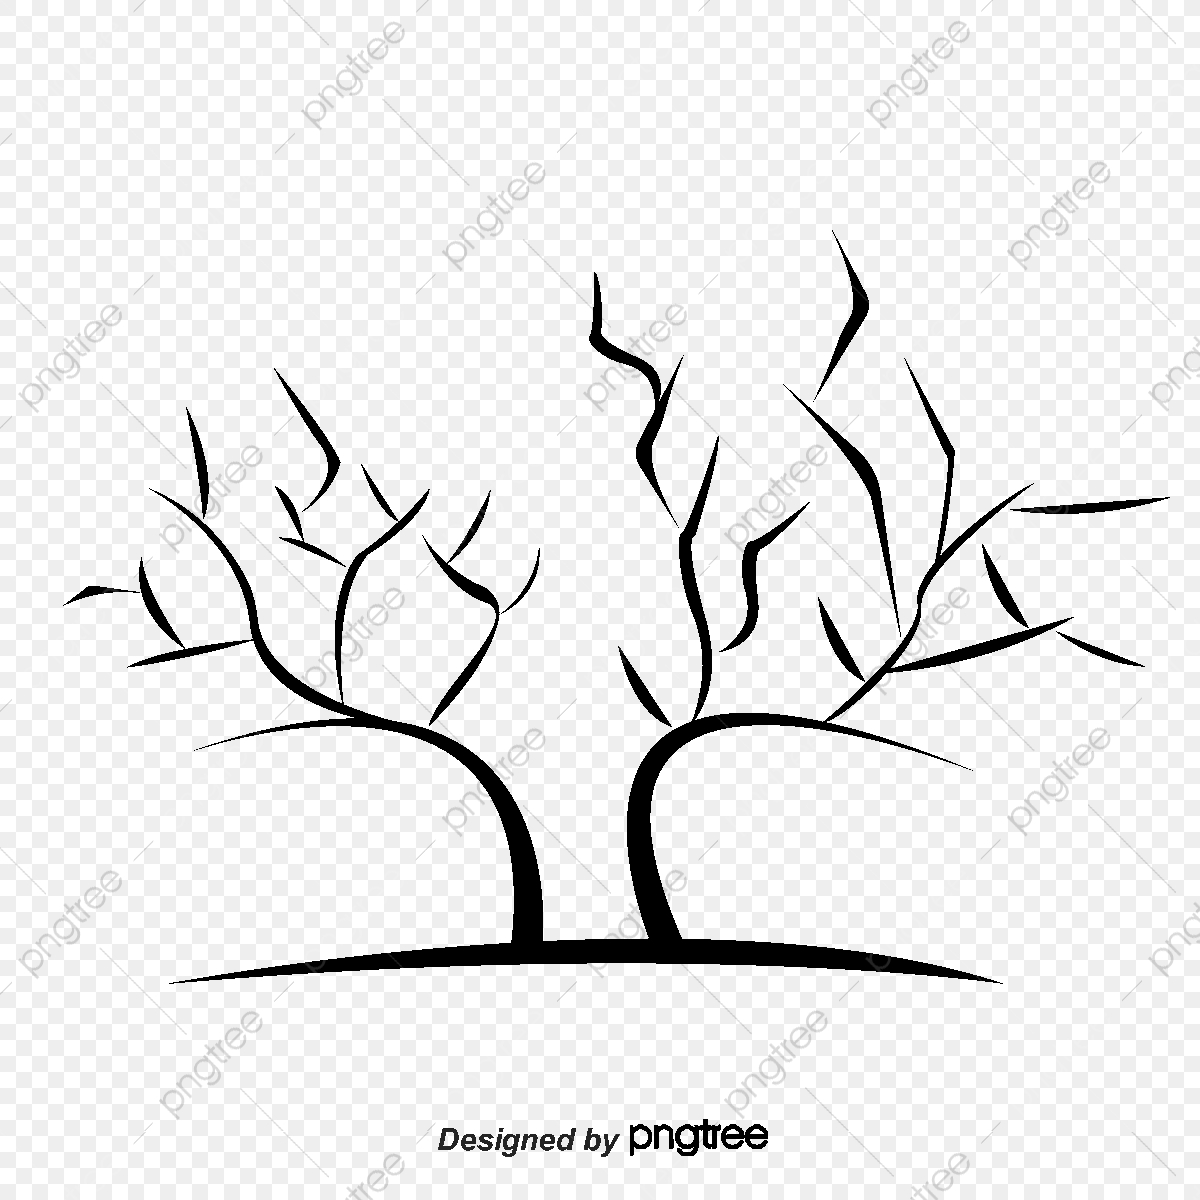 2017 Black Winter Tree Without Leaves Black 2017 Leaf Png Transparent Clipart Image And Psd File For Free Download